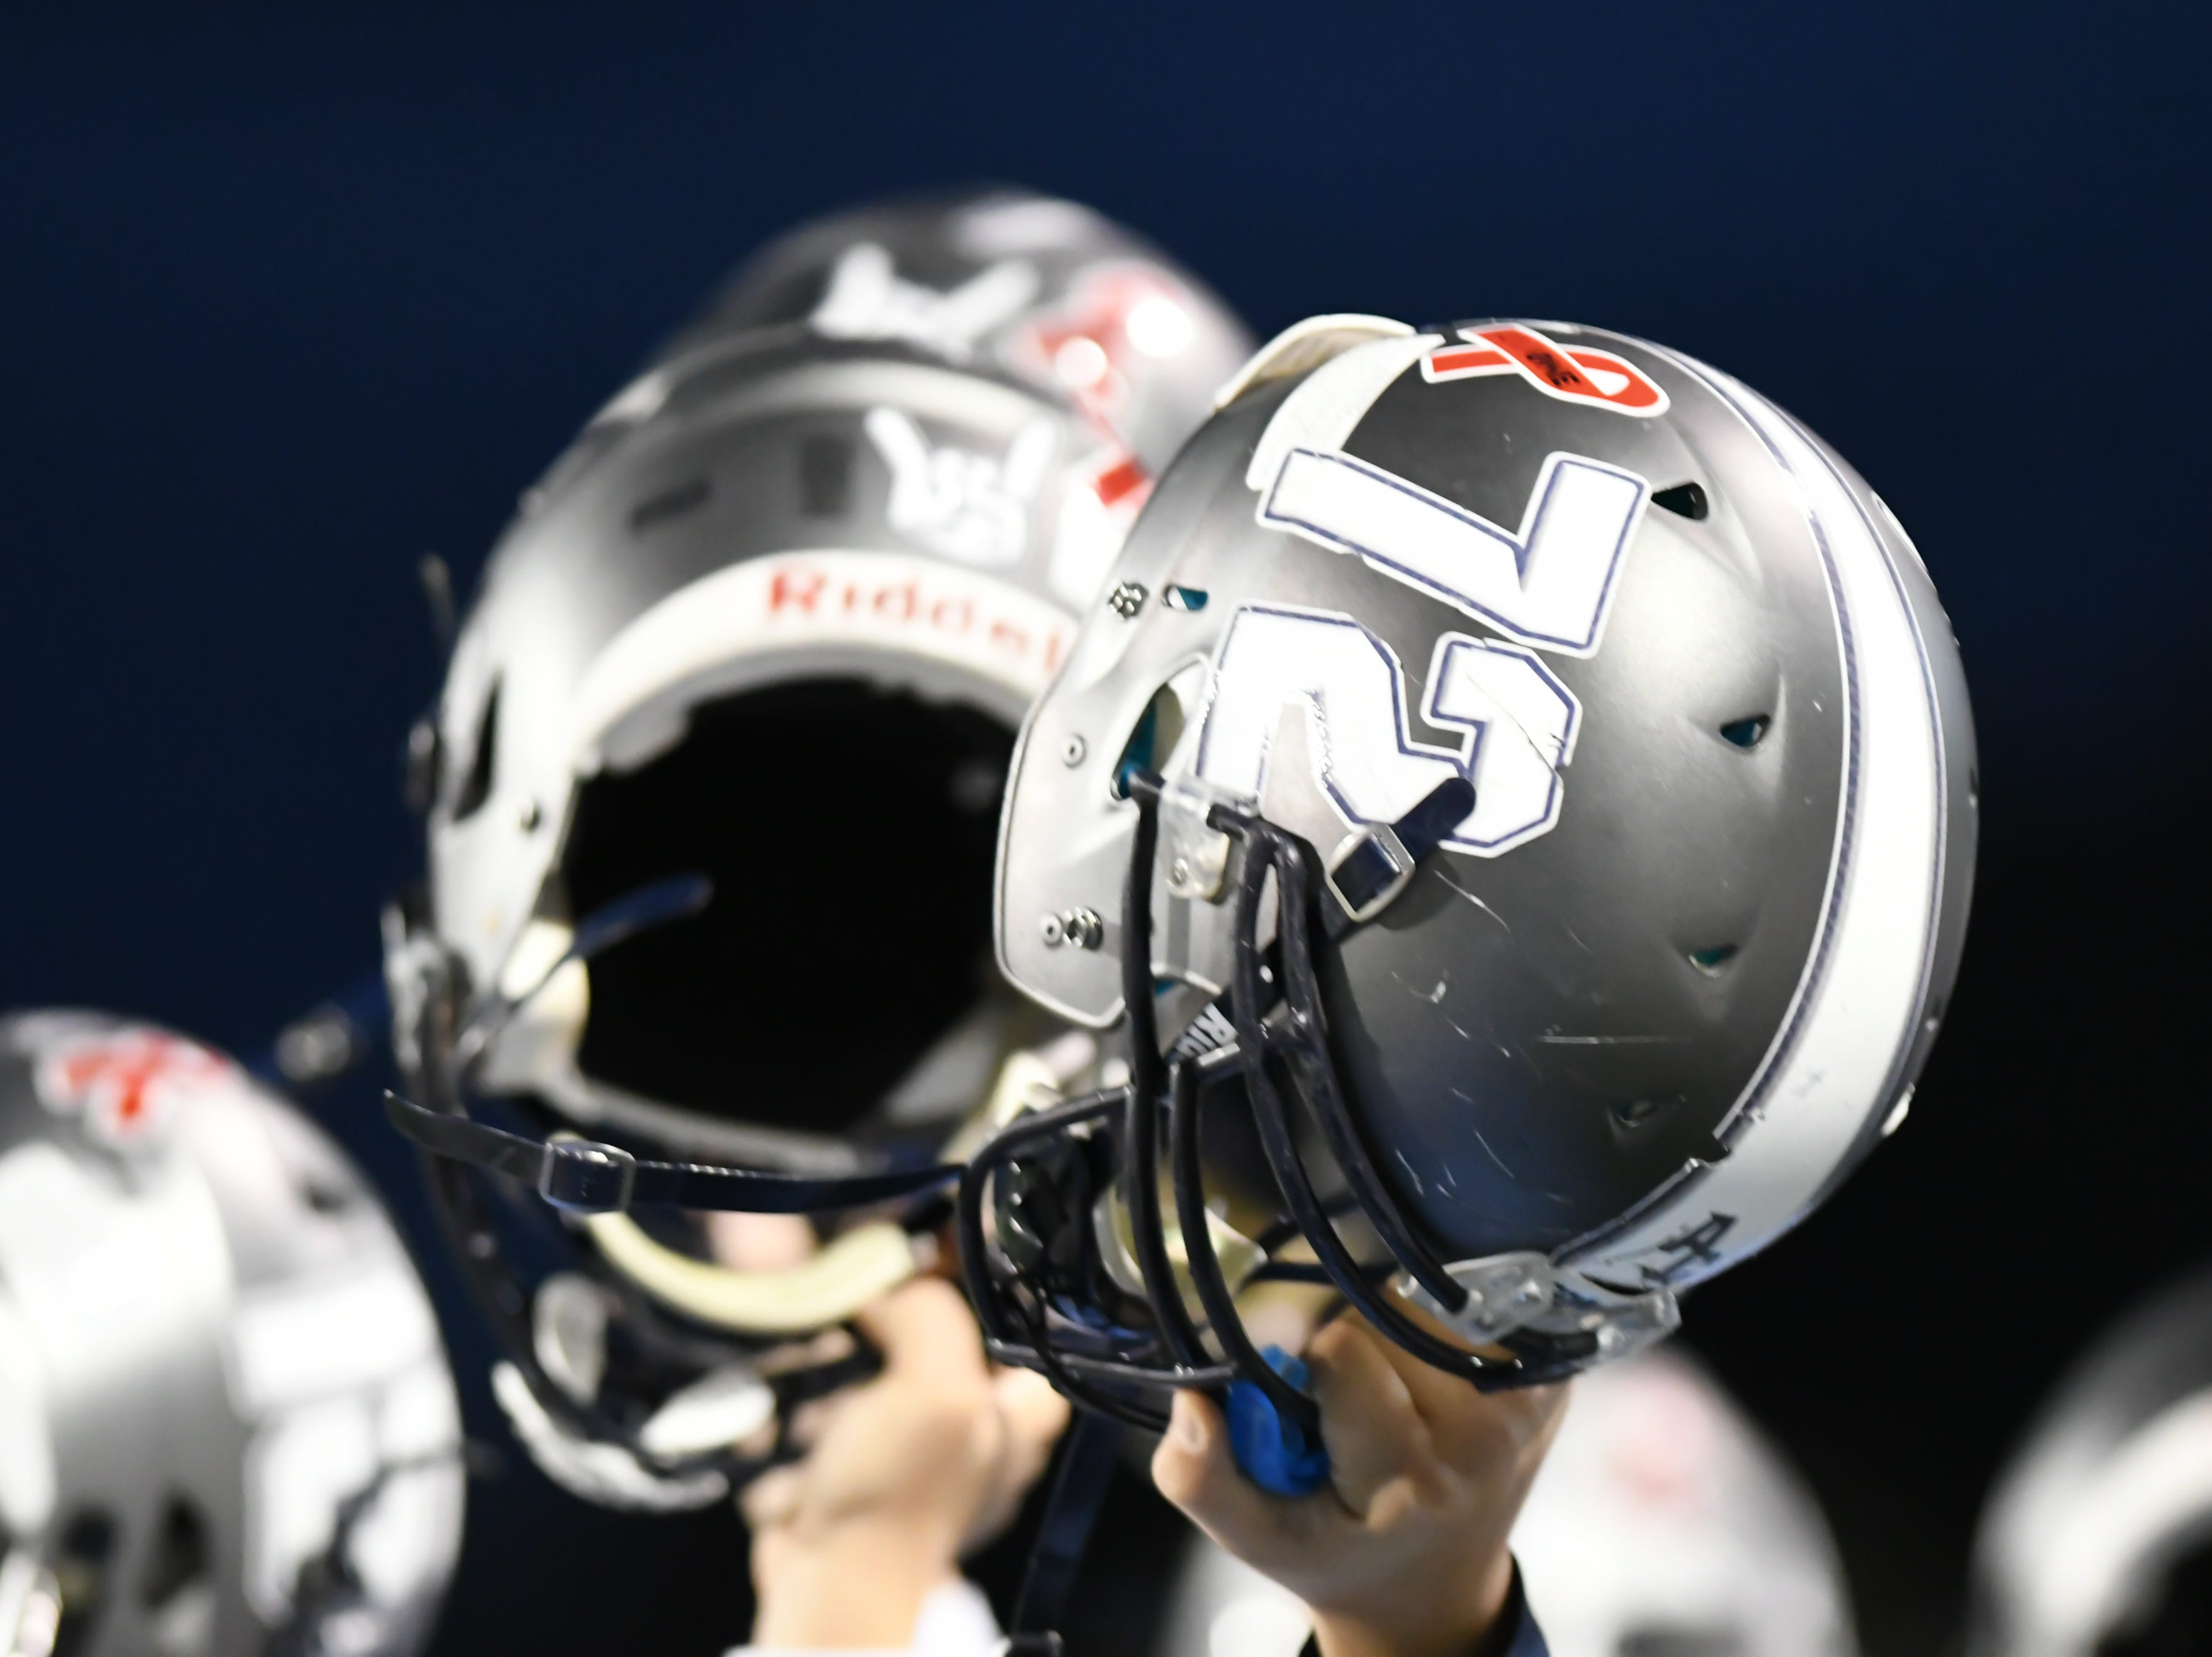 The Anderson County Mavericks raise their helmets before the football game against Union County at Anderson County on Friday, Nov. 2nd, 2018.